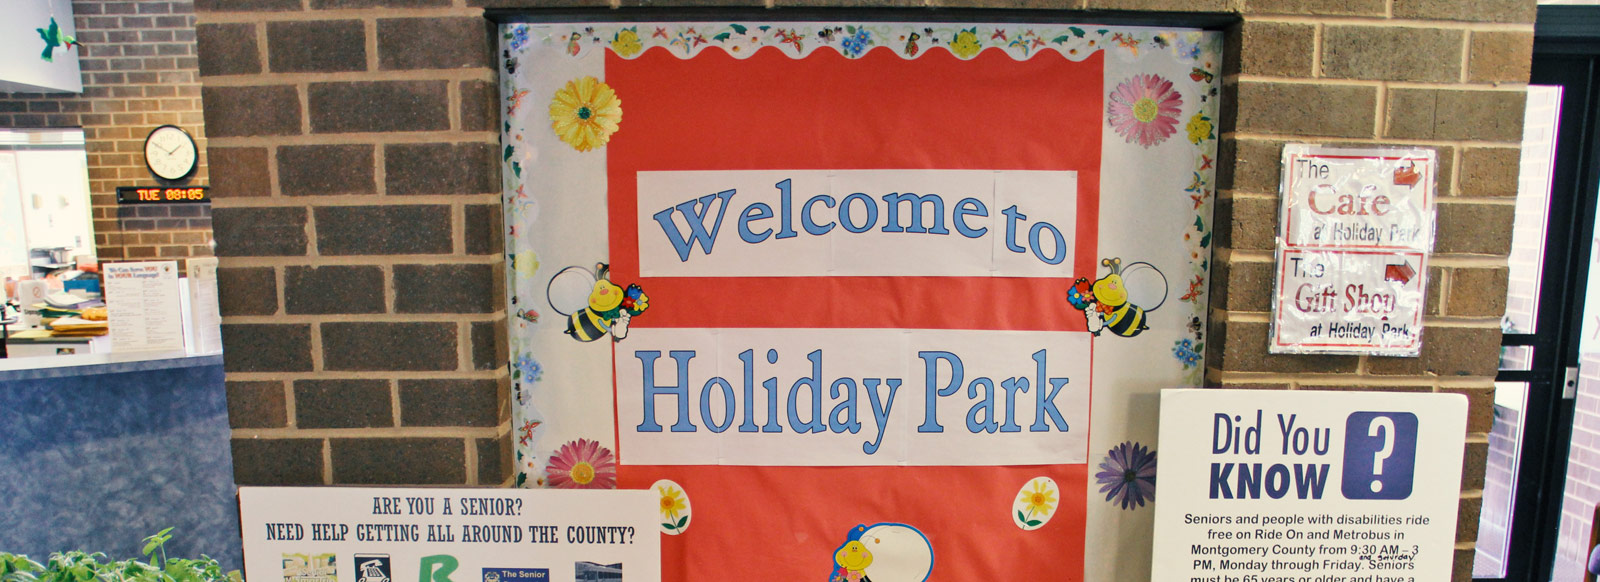 Holiday park senior center